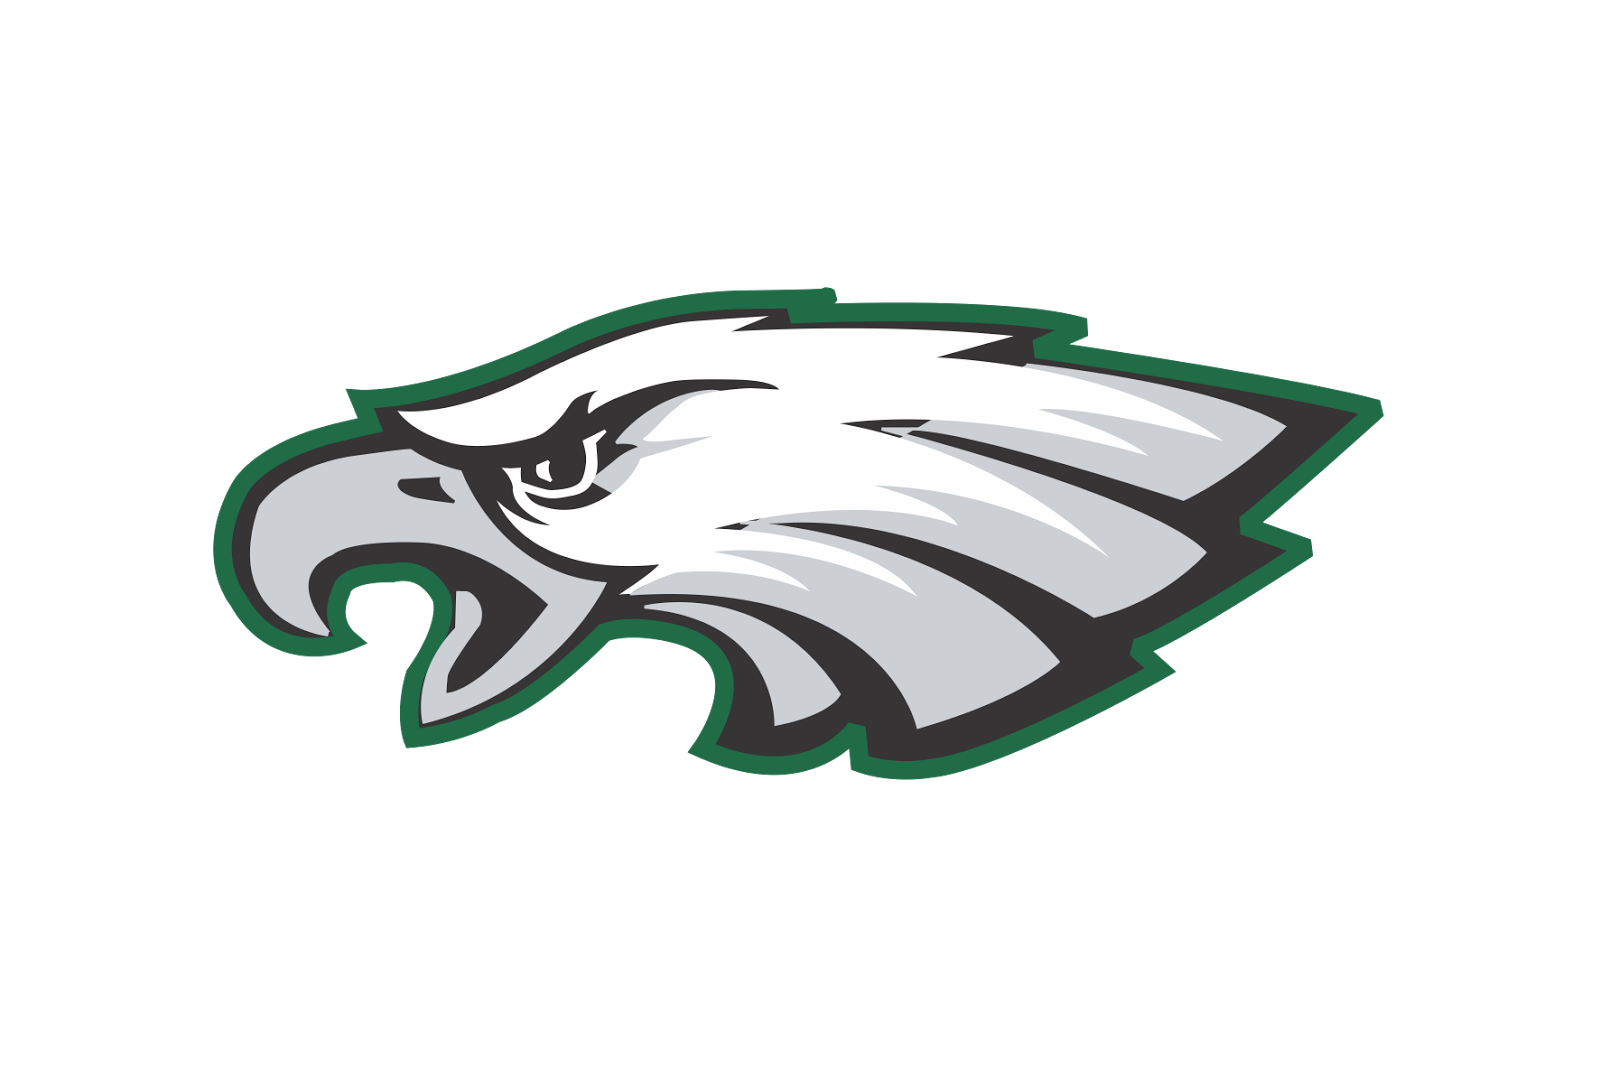 Philadelphia eagles football clipart graphic freeuse library Eagles Png Logo - Free Transparent PNG Logos graphic freeuse library